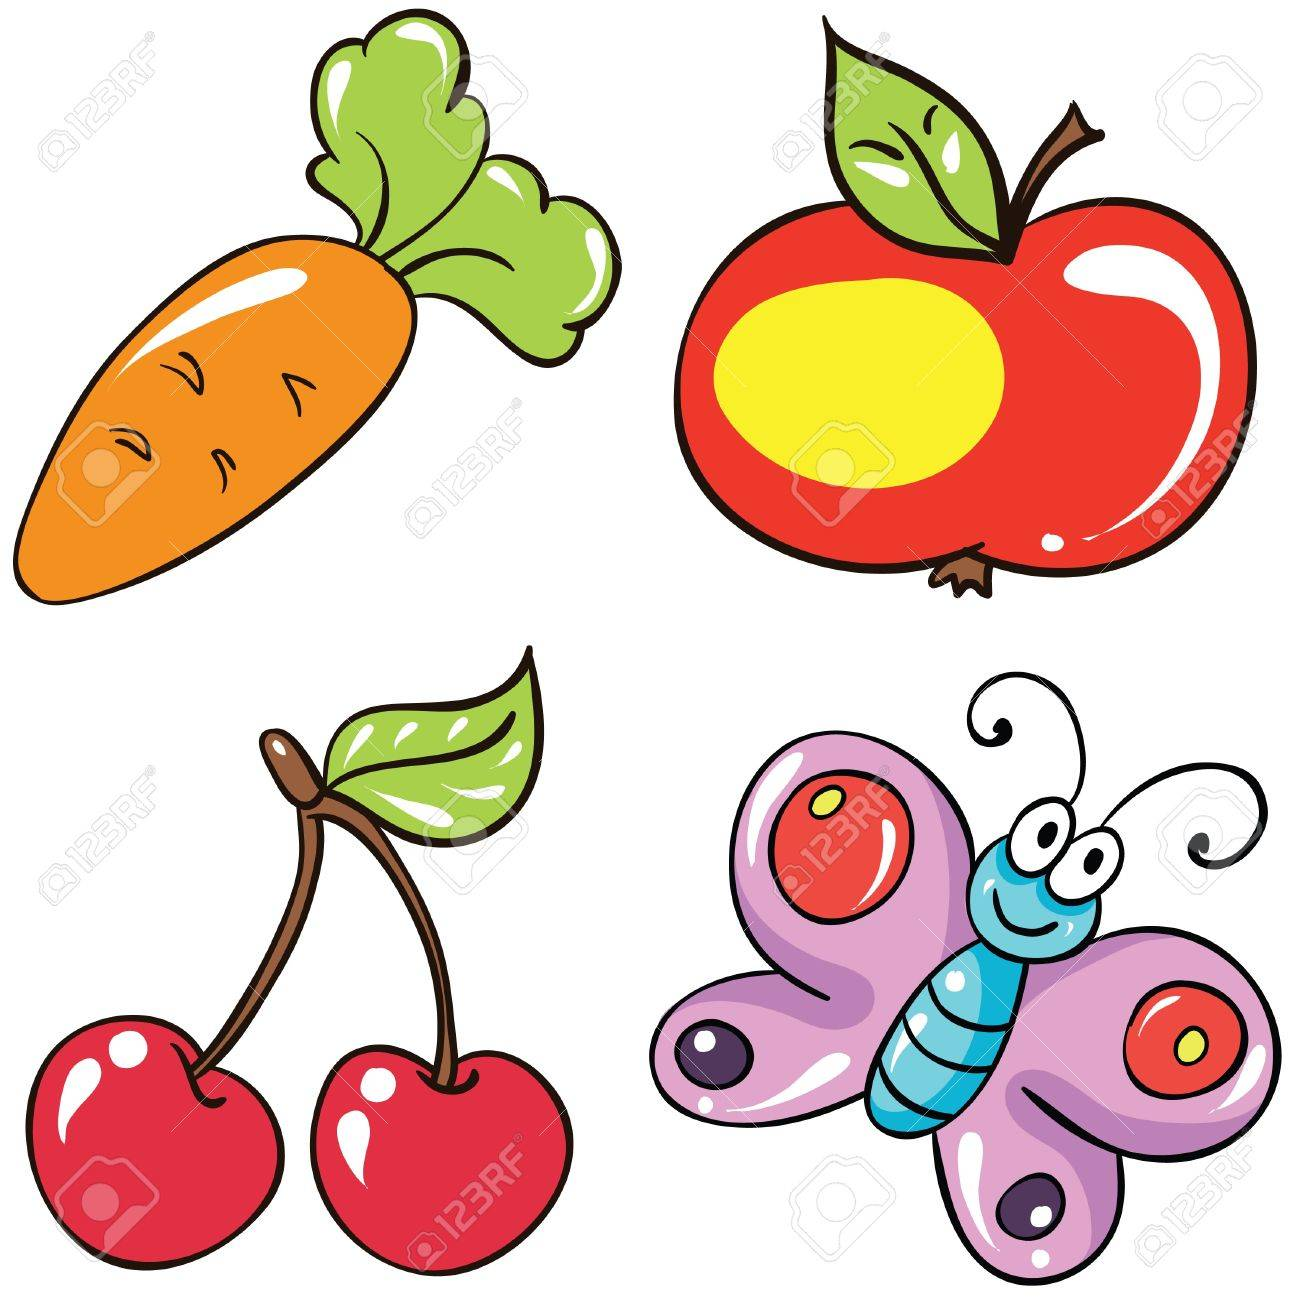 Illustration - set of isolated cartoon fruits and vegetables on white background Stock Vector - 18861211